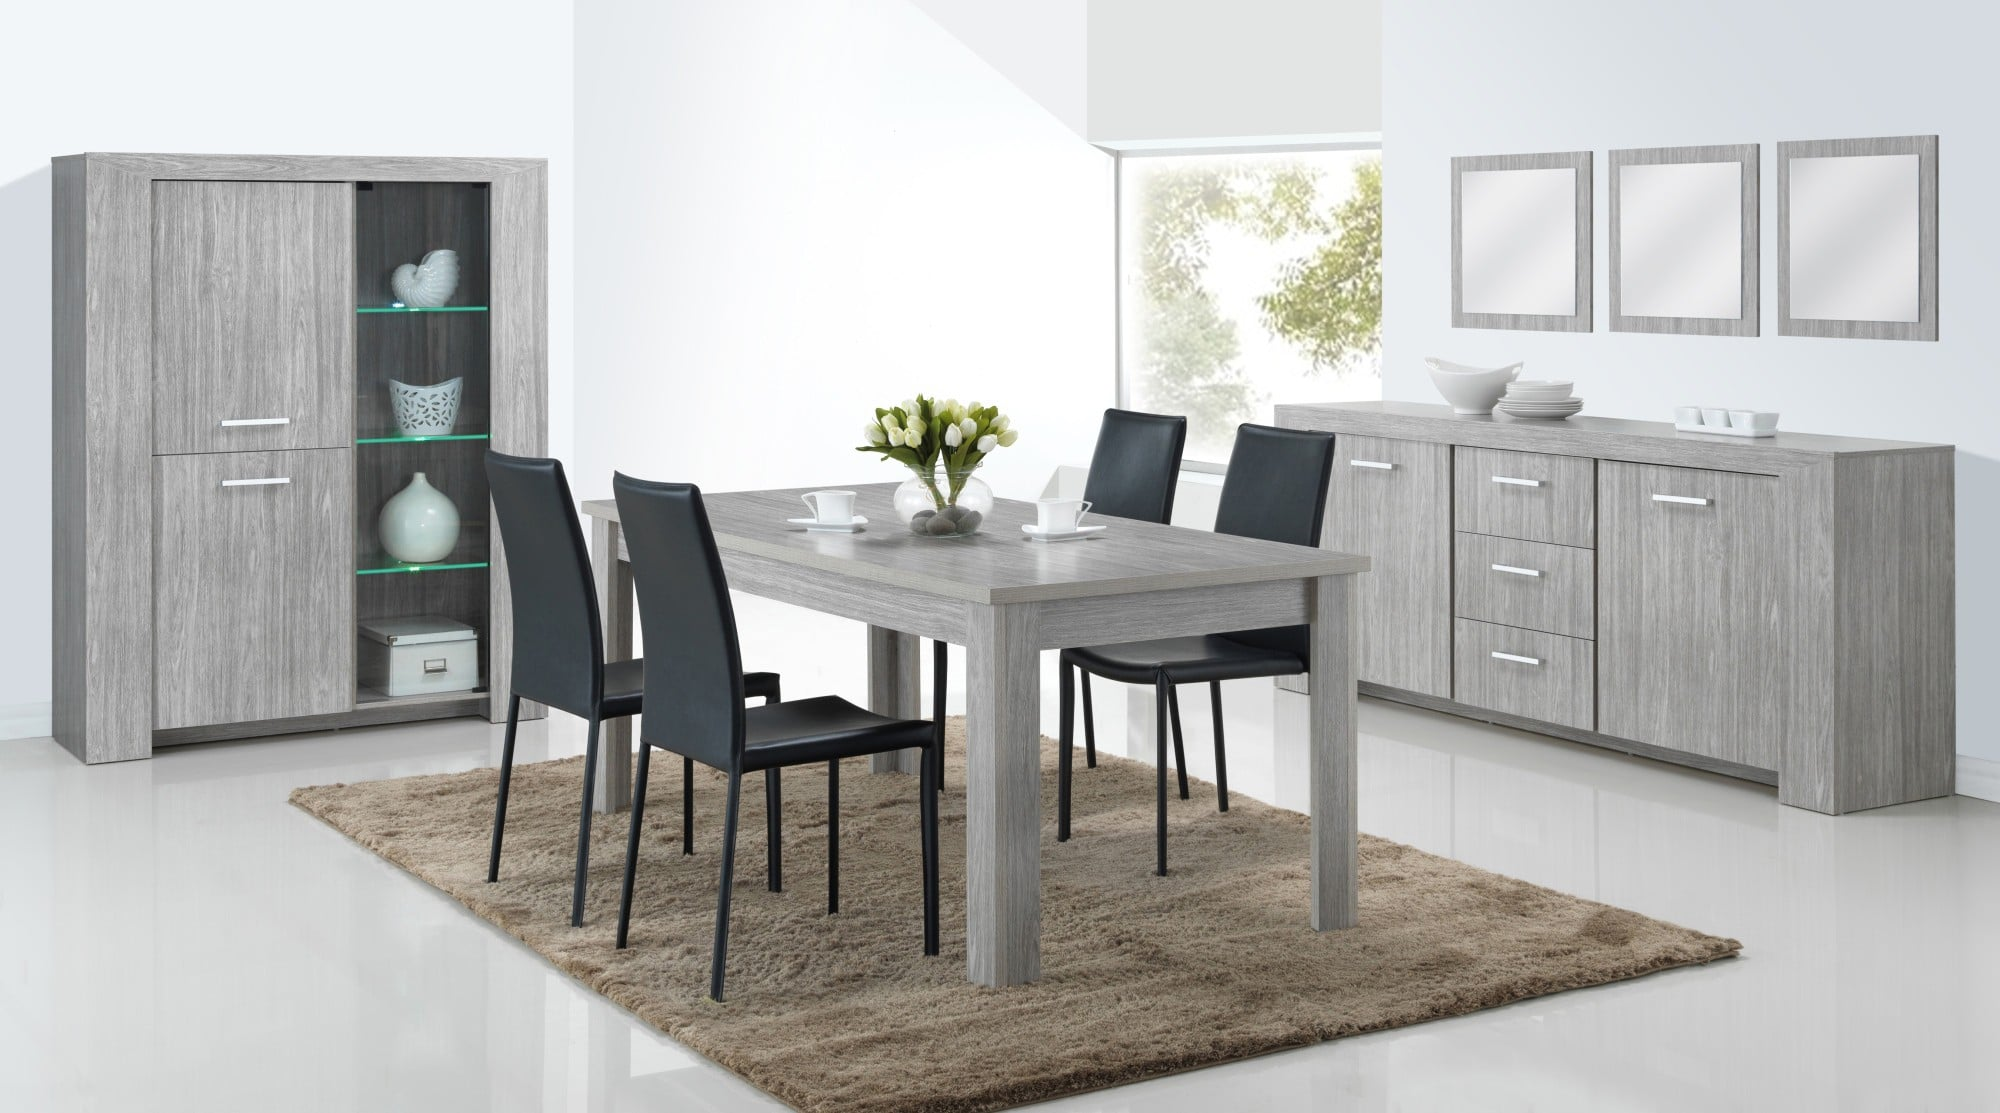 salle a manger moderne avec table ronde. Black Bedroom Furniture Sets. Home Design Ideas